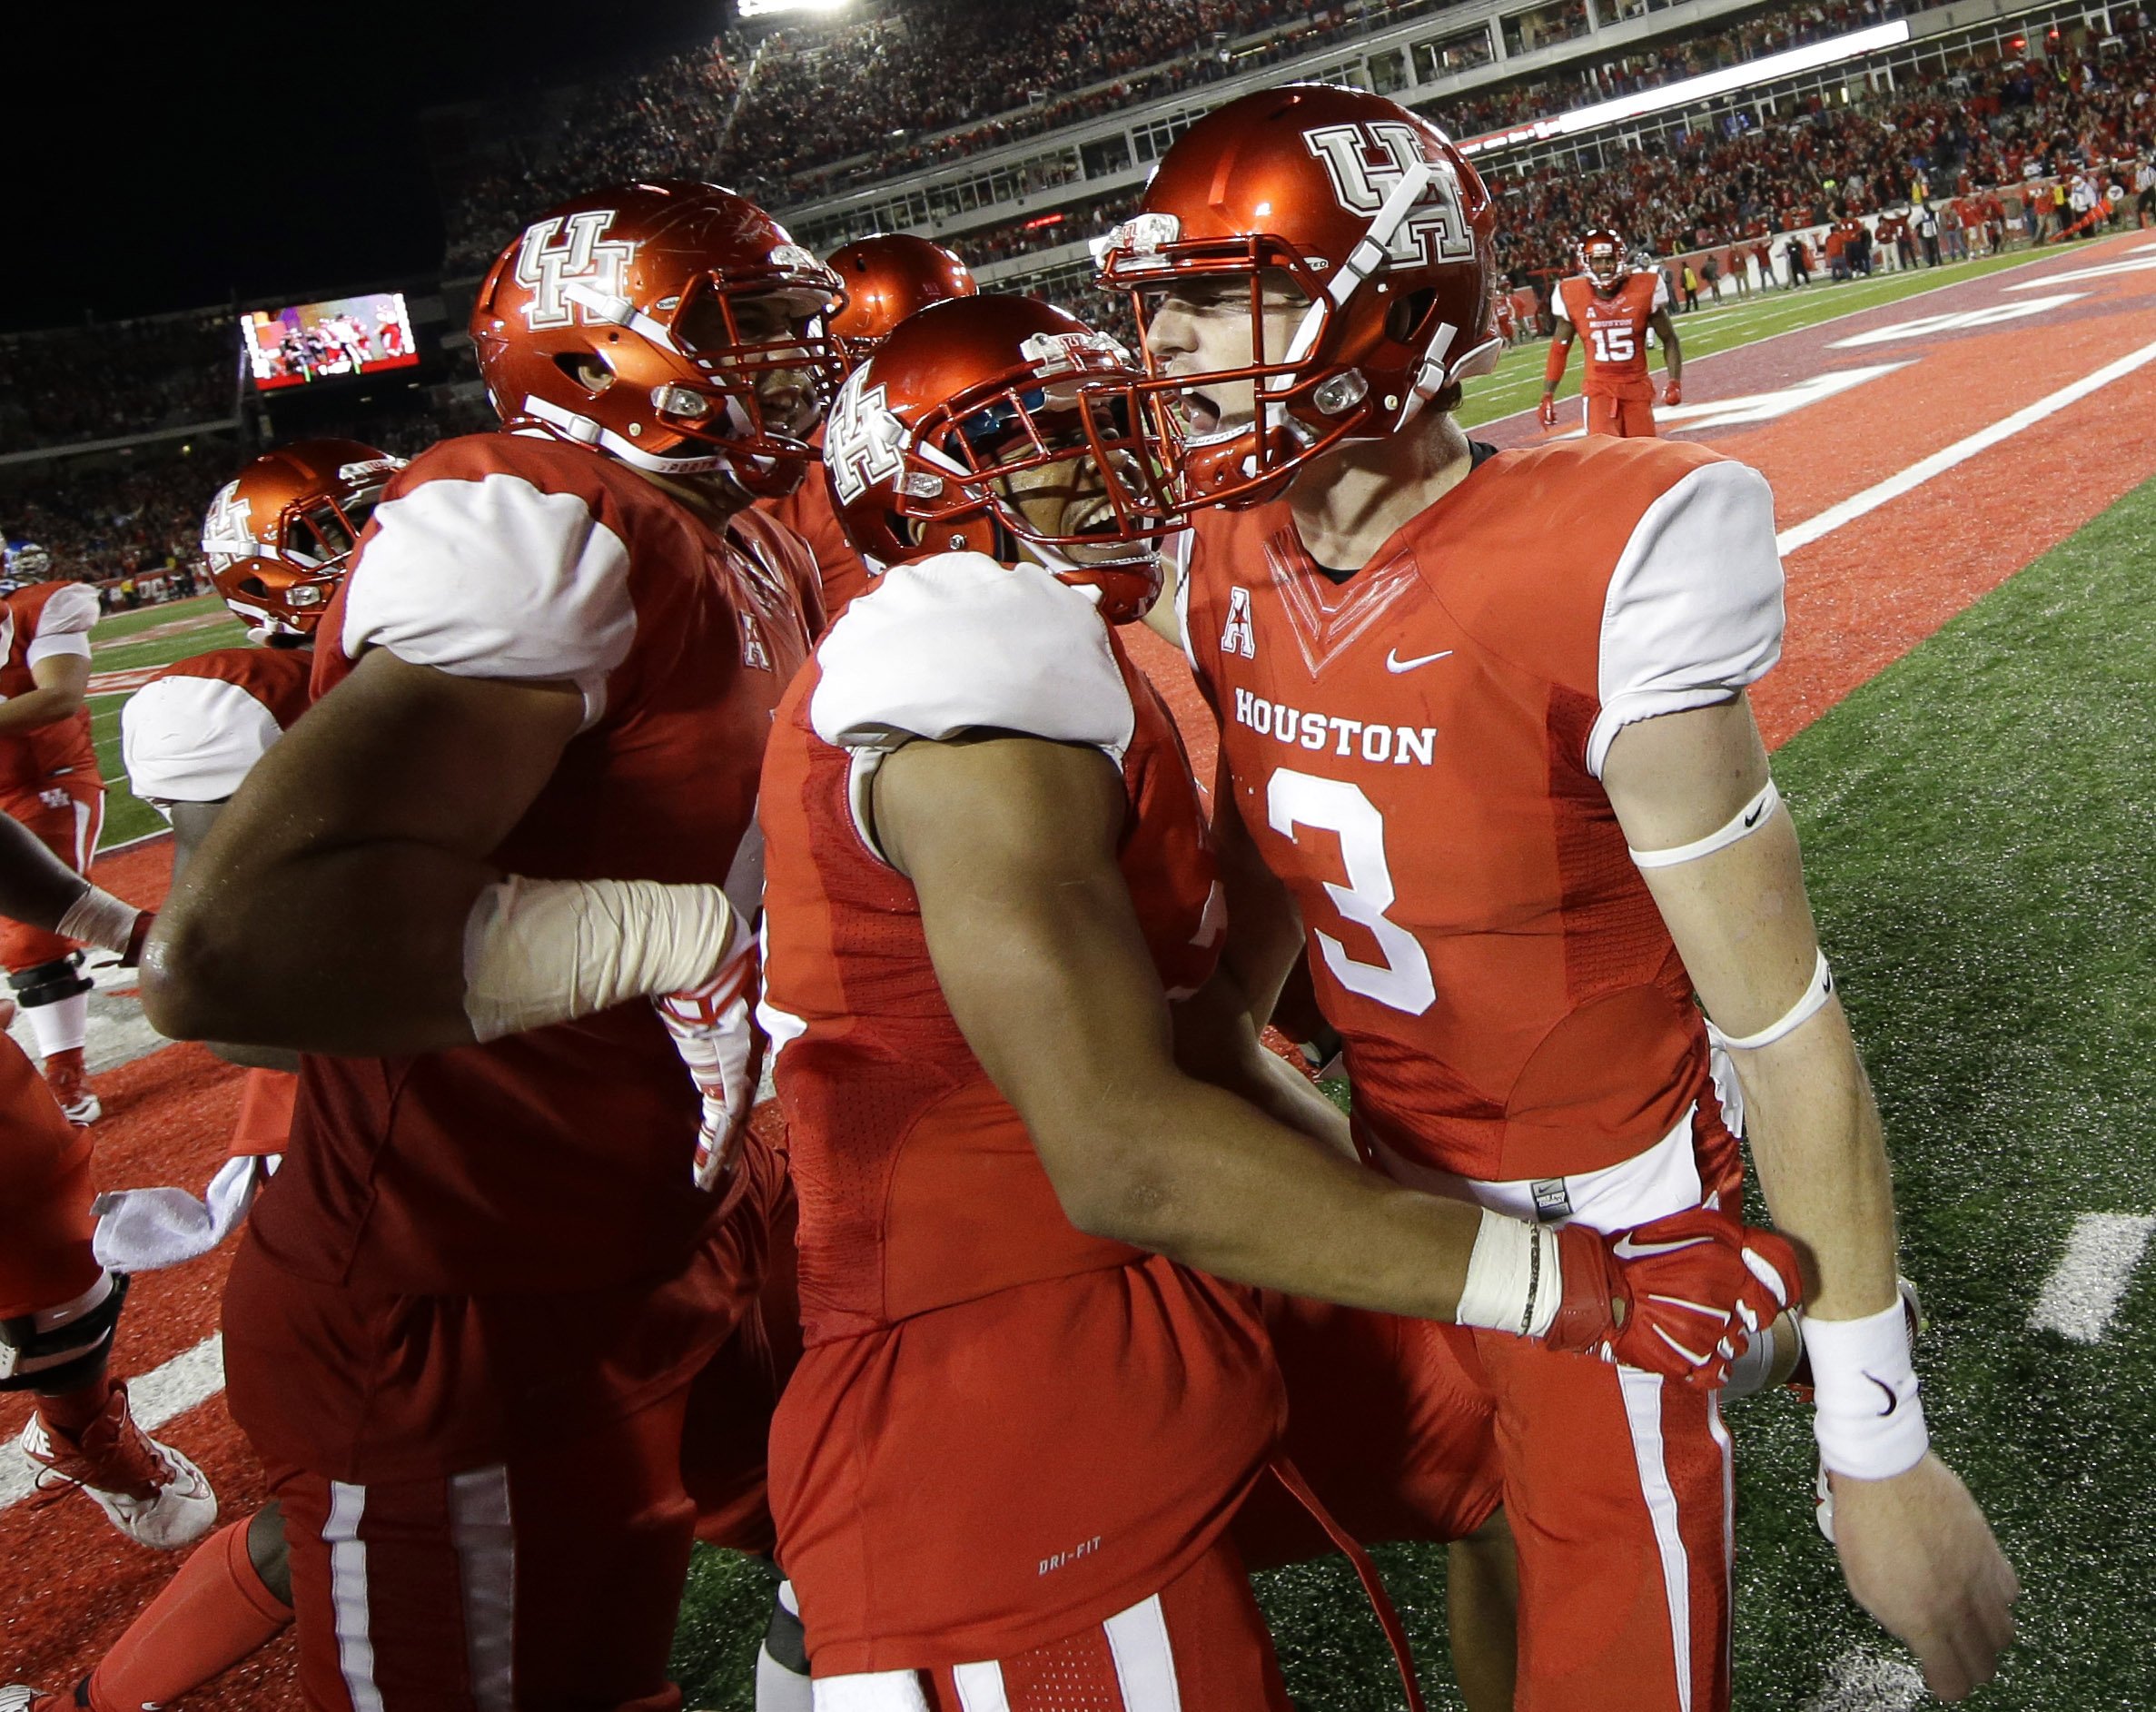 Houston quarterback Kyle Postma (3) celebrates with Chance Allen, center, and teammates after scoring a touchdown during the fourth quarter of an NCAA college football game against Memphis, Saturday, Nov. 14, 2015, in Houston. (AP Photo/David J. Phillip)